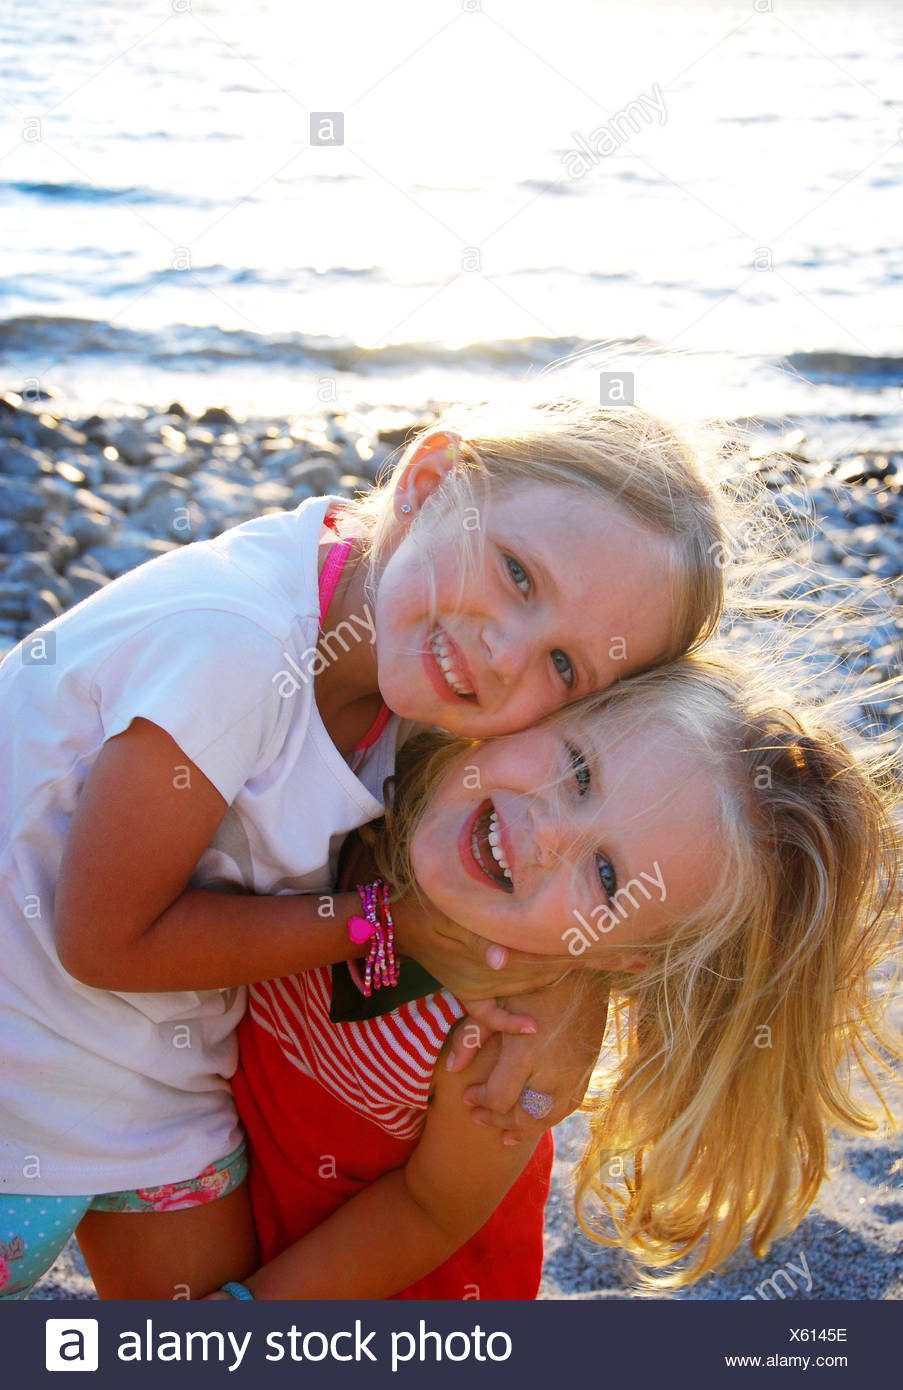 Argentina, Rio Negro, Sisters by lake - Stock Image